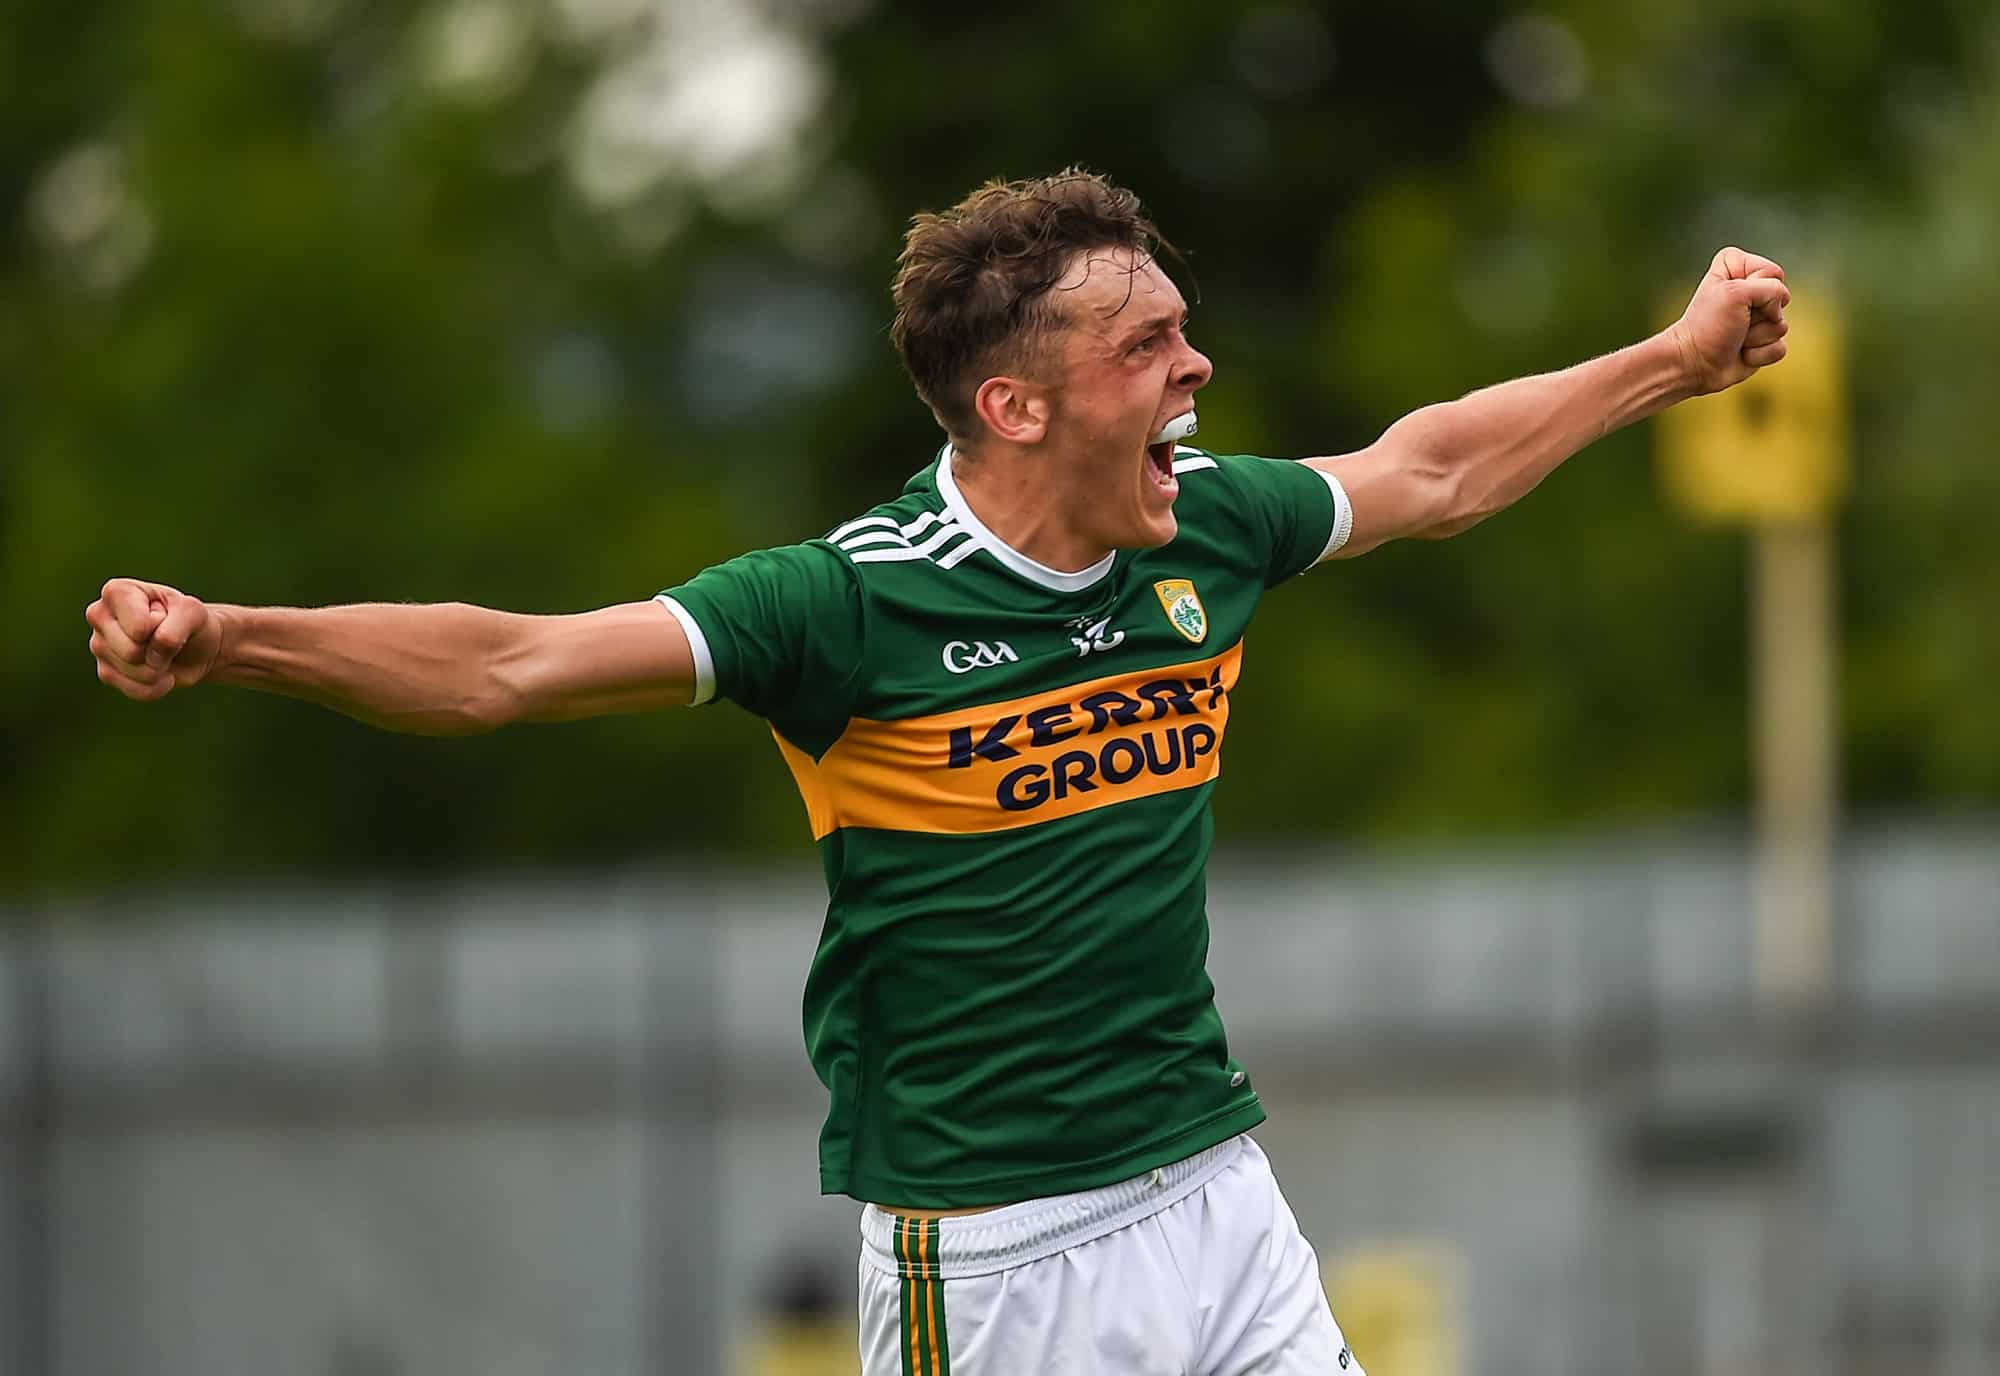 David Clifford is new Kerry Minor Captain